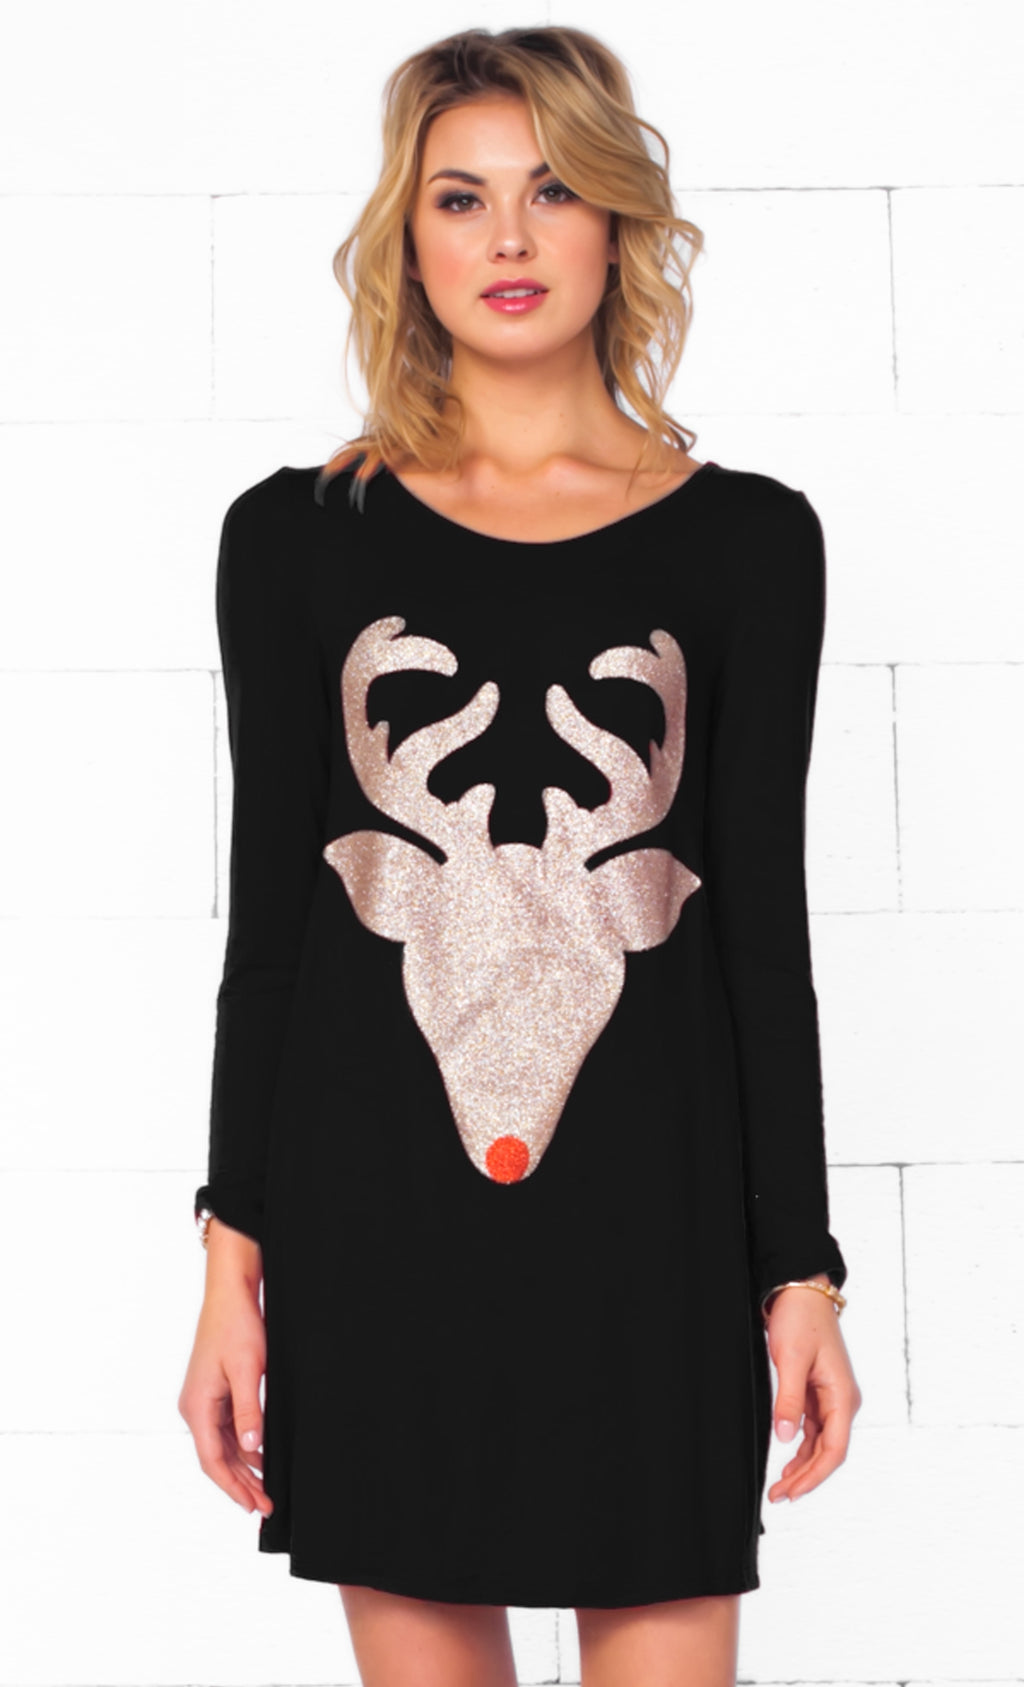 Indie XO Dear Santa Black Gold Glitter Red Nose Reindeer Head Long Sleeve Scoop Neck Tunic Top Mini Dress - Sold Out